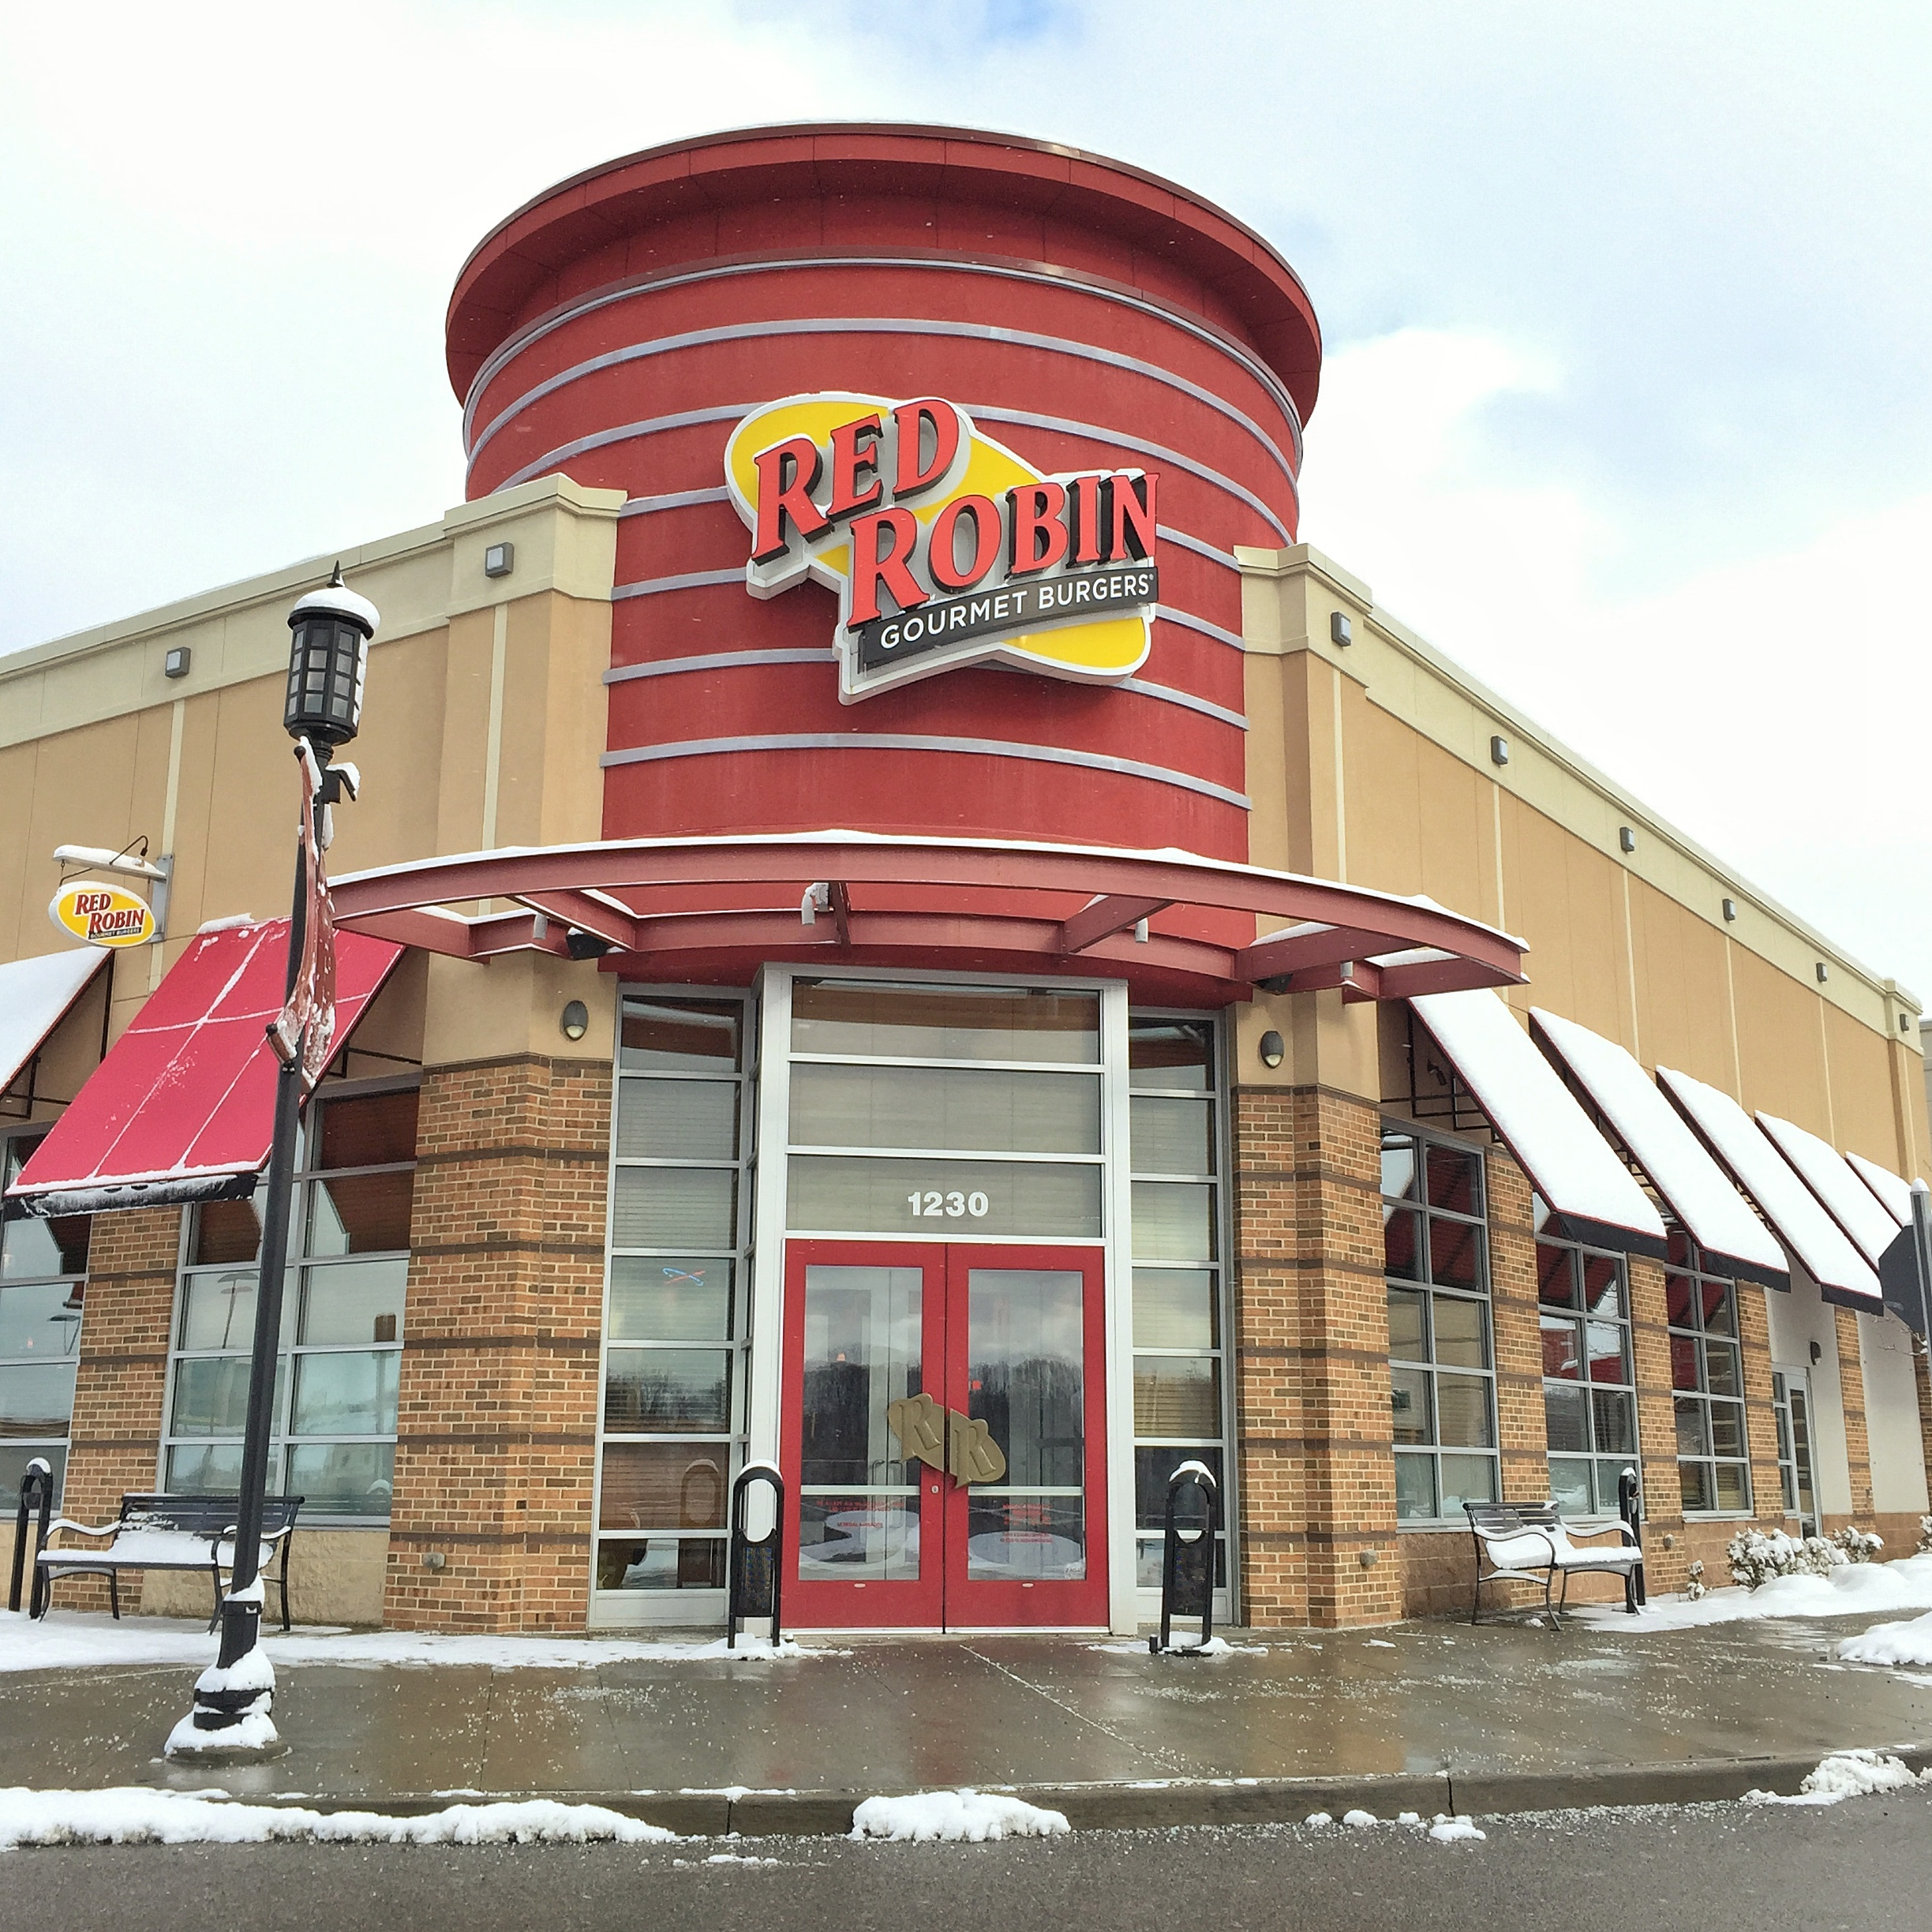 A Red Robin restaurant sign shown from the outside of a building on a cloudy day.